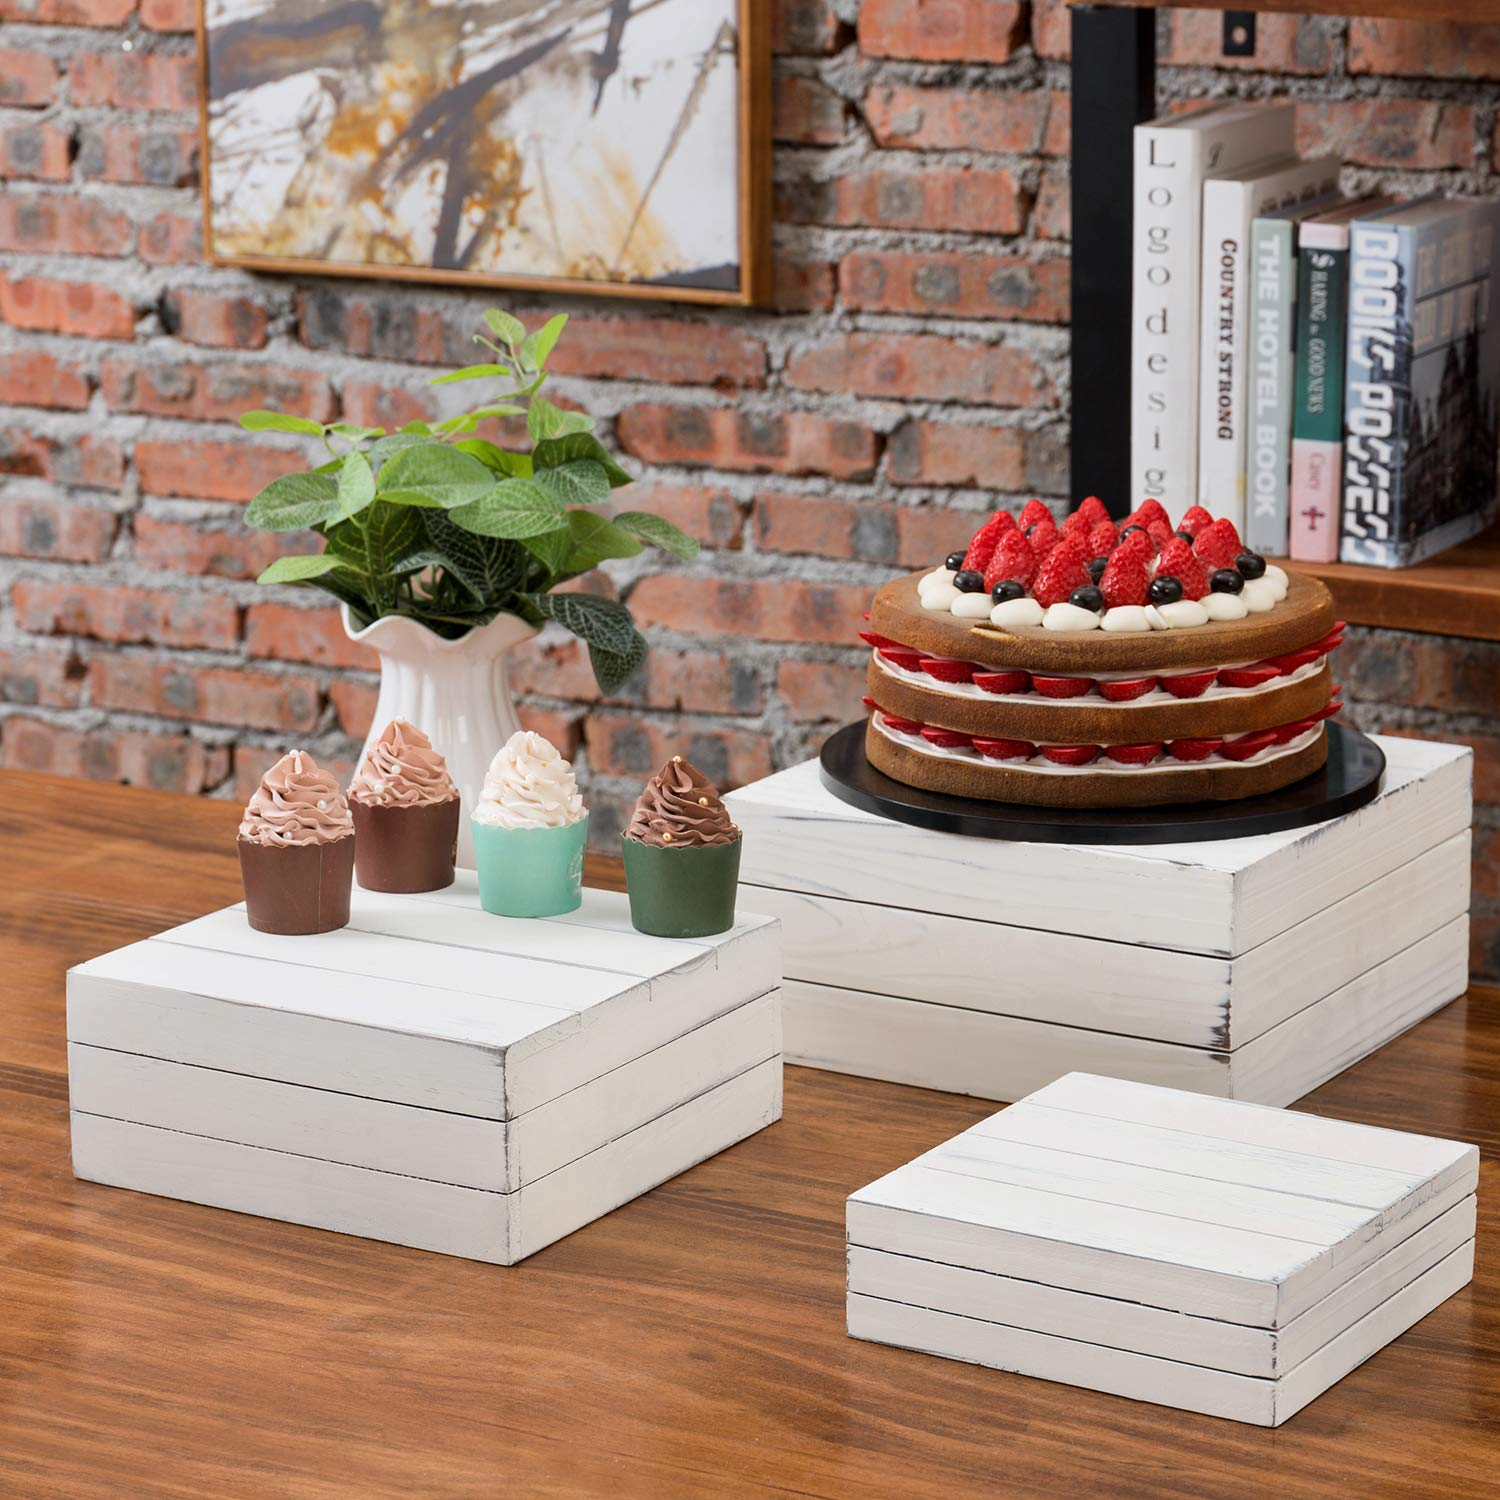 MyGift Vintage Distressed White Wood Nesting Storage Crate Display Riser Stands, Set of 3